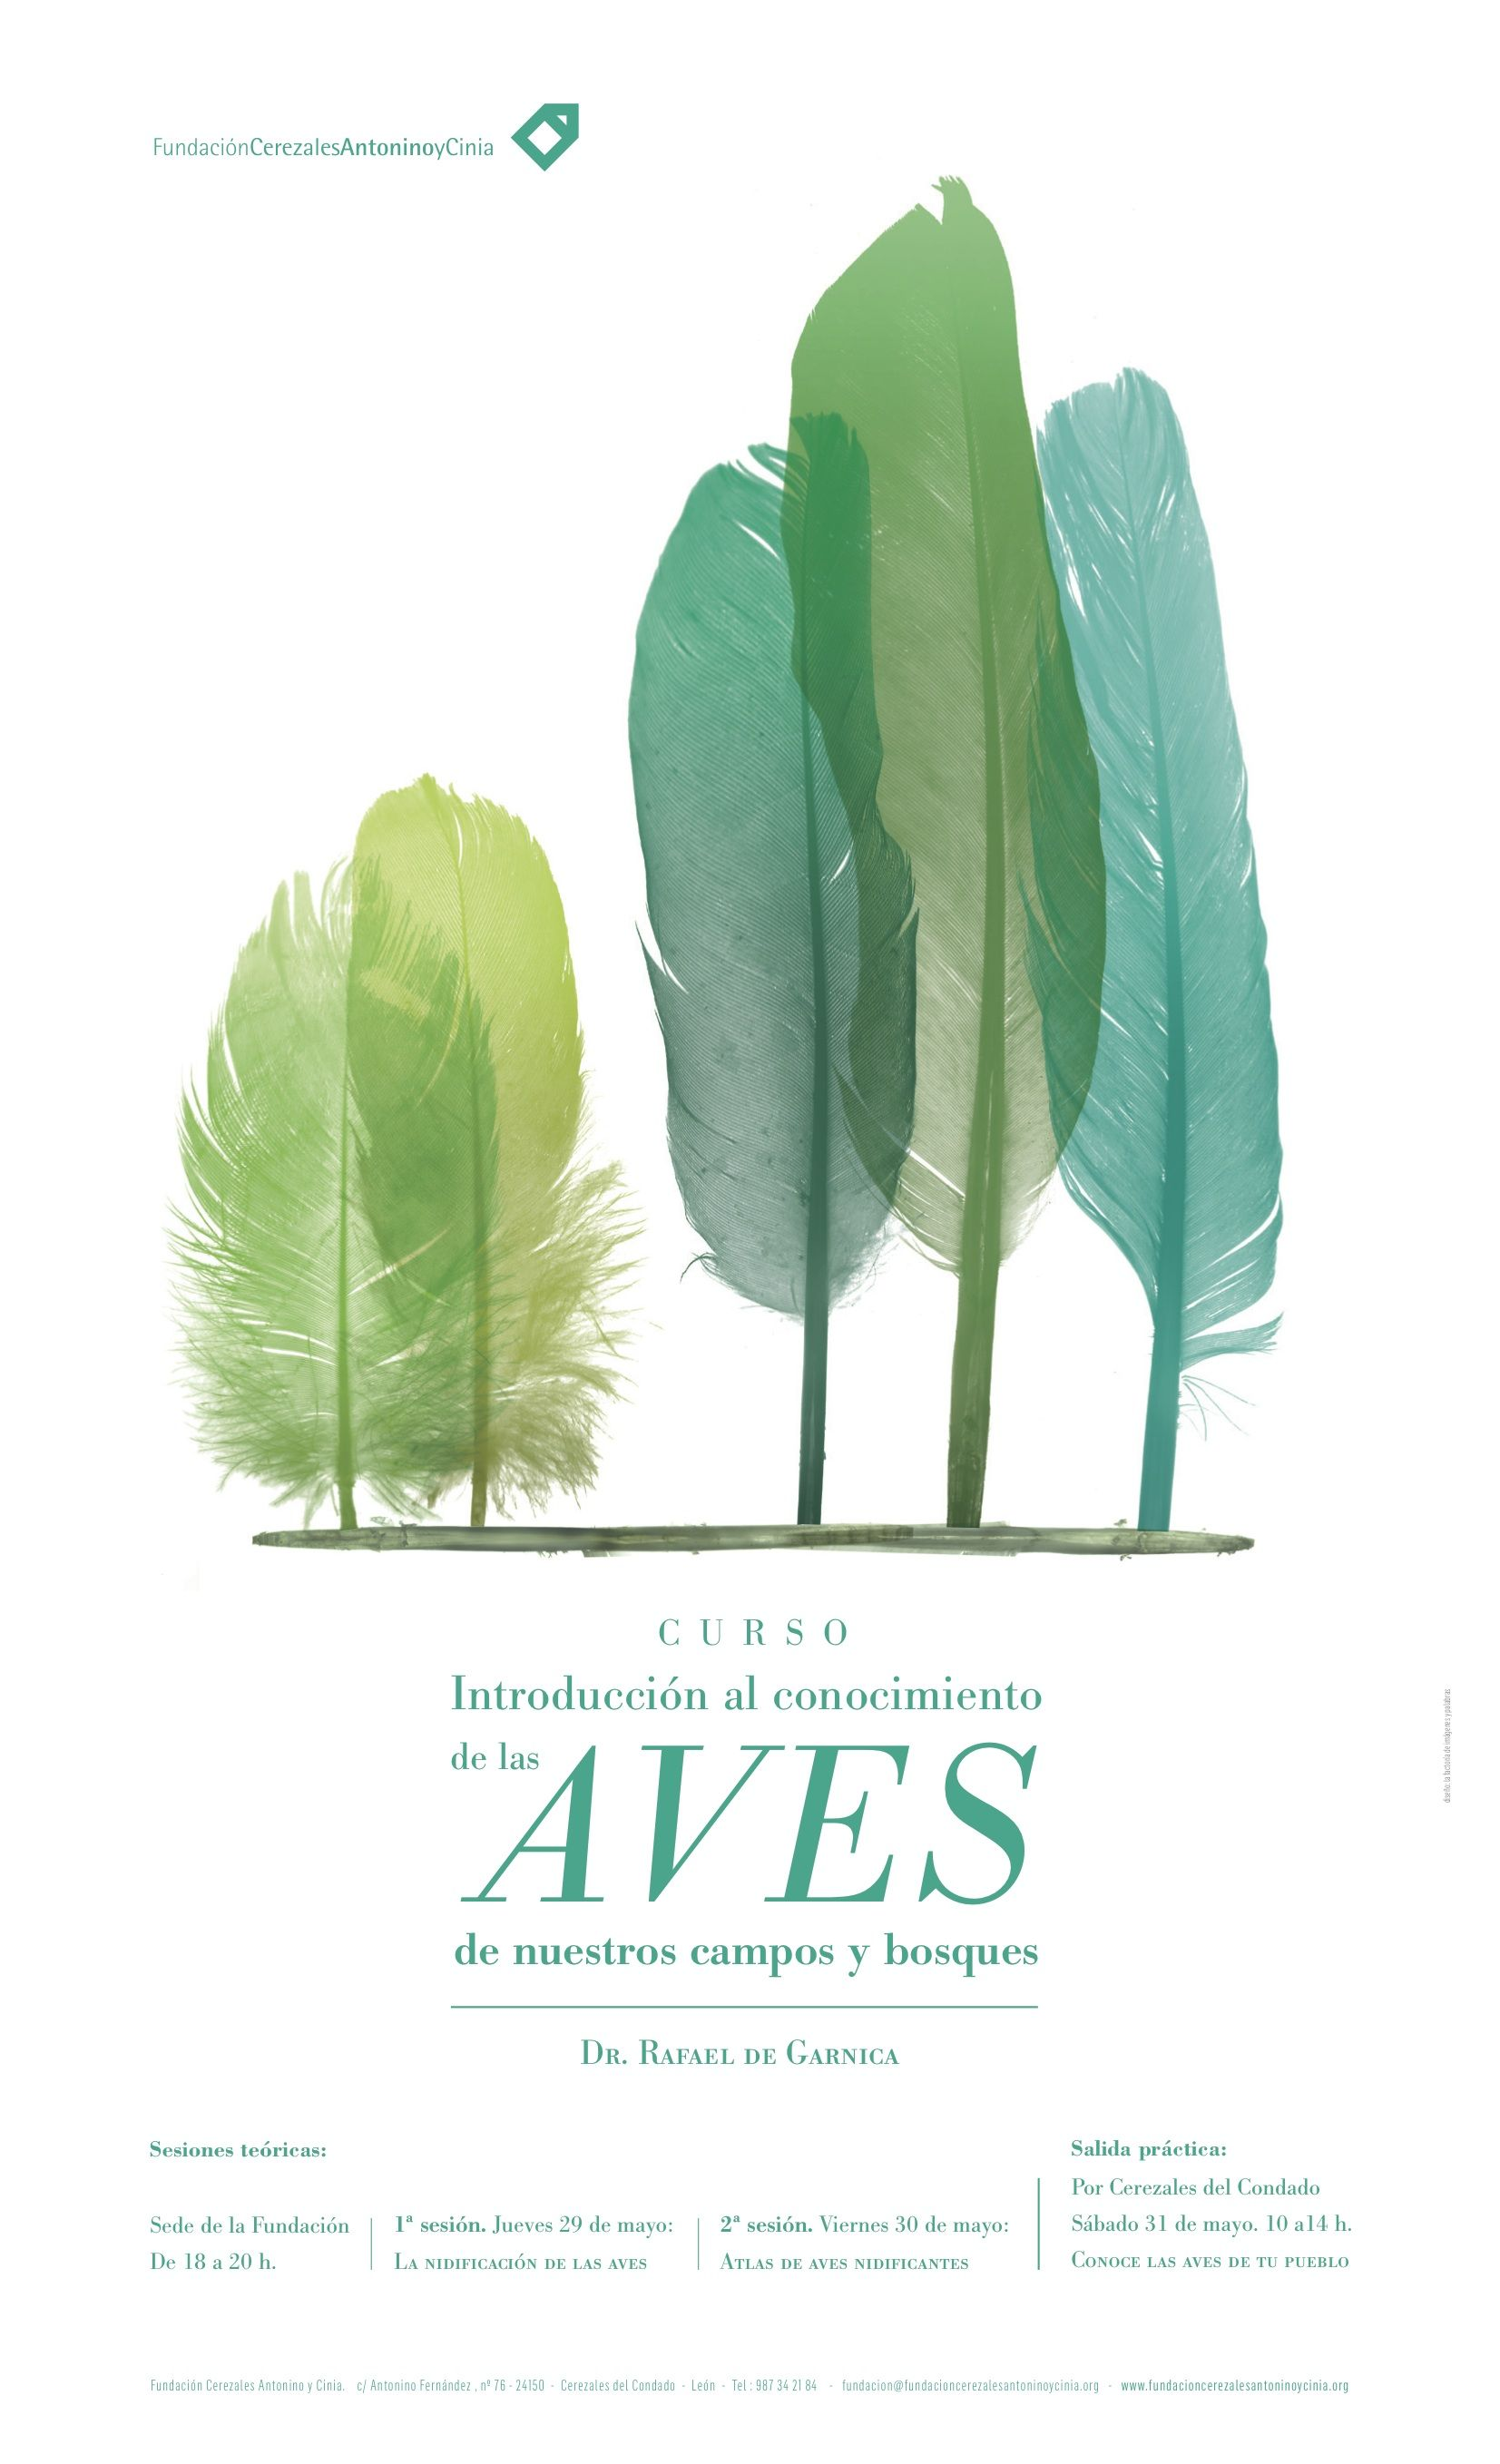 """Poster of the course """"Introduction to the knowledge of local birds """" http://www.fundacioncerezalesantoninoycinia.org/node/1115 #birds #rural #poster #feather By González Macías"""